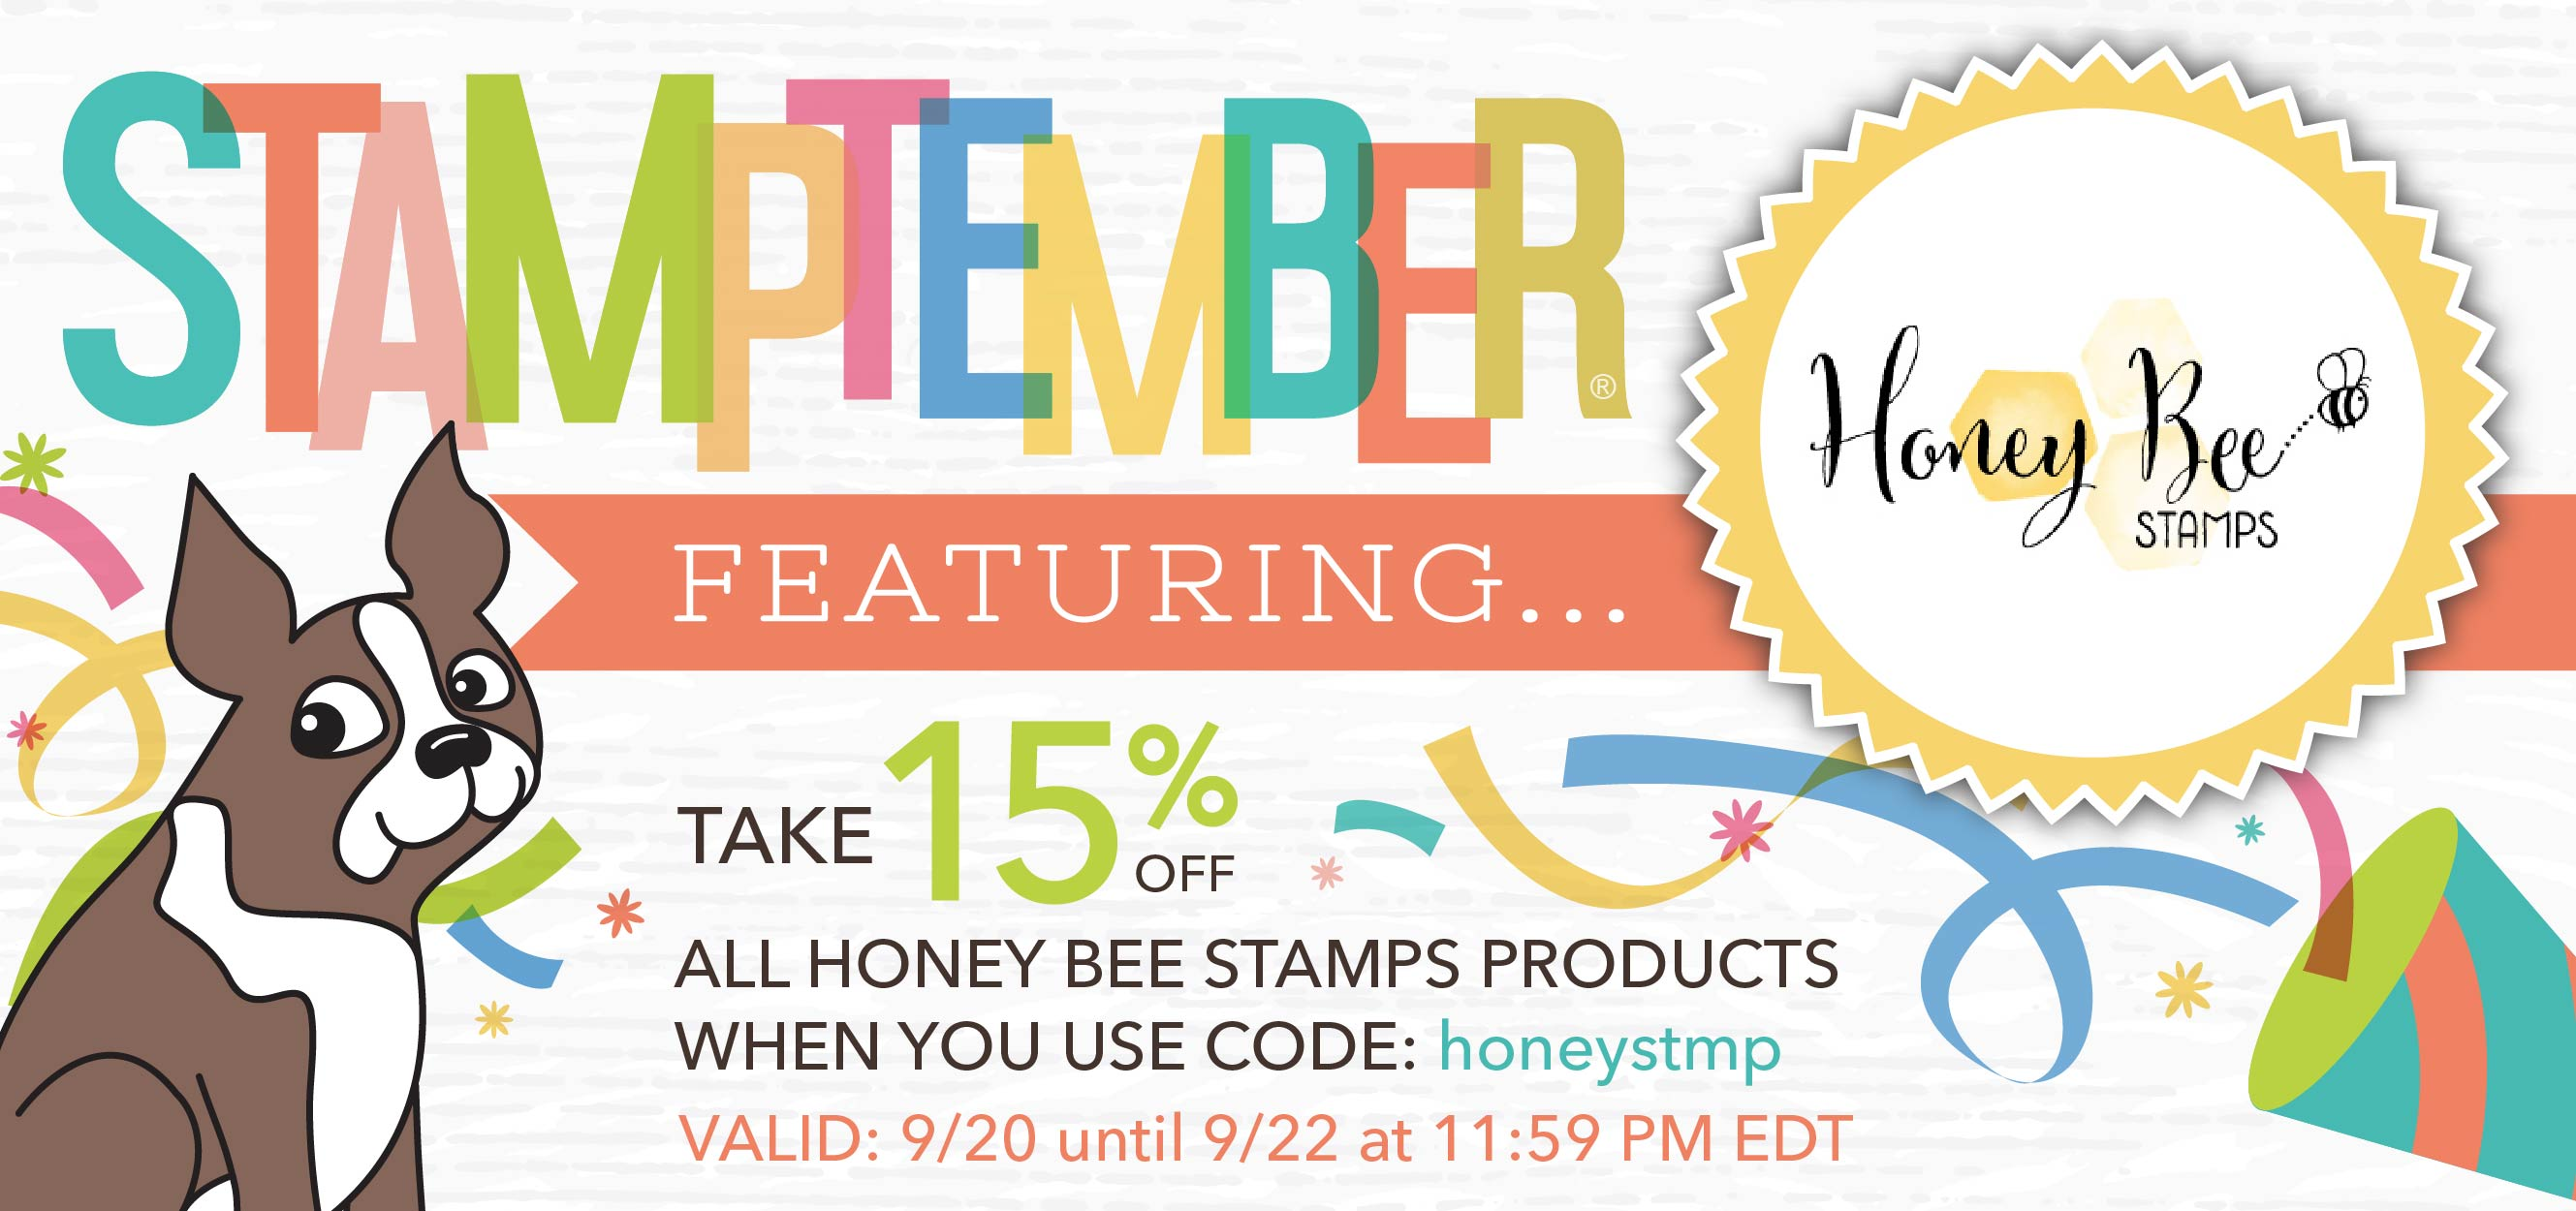 feature_master_honey-bee-stamps-01